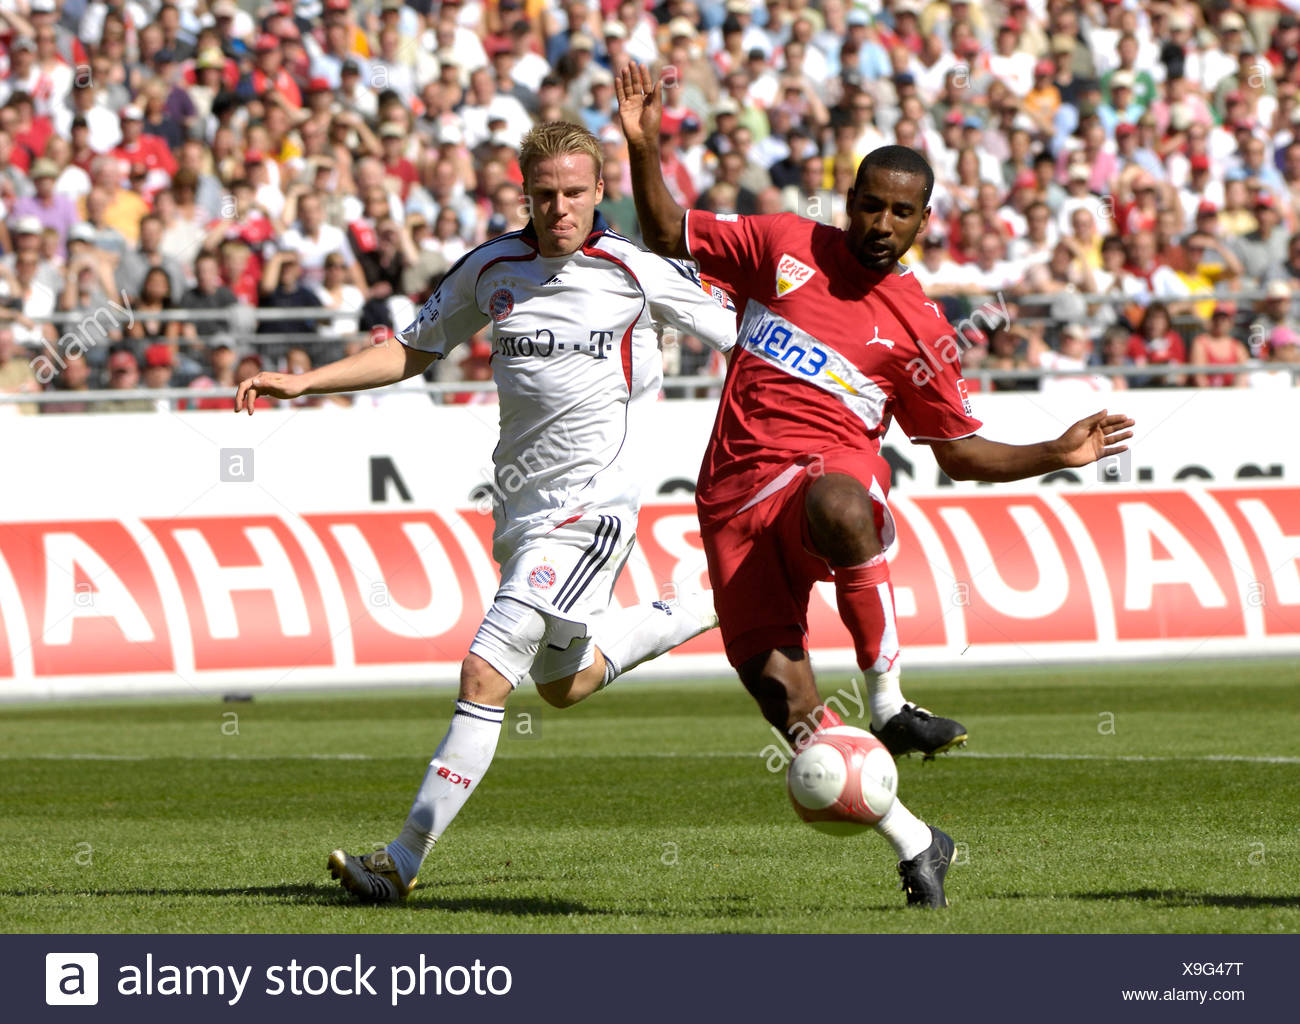 CACAU VfB Stuttgart (left) versus Christian LELL FC Bayern Muenchen, shooting 2:0 - Stock Image